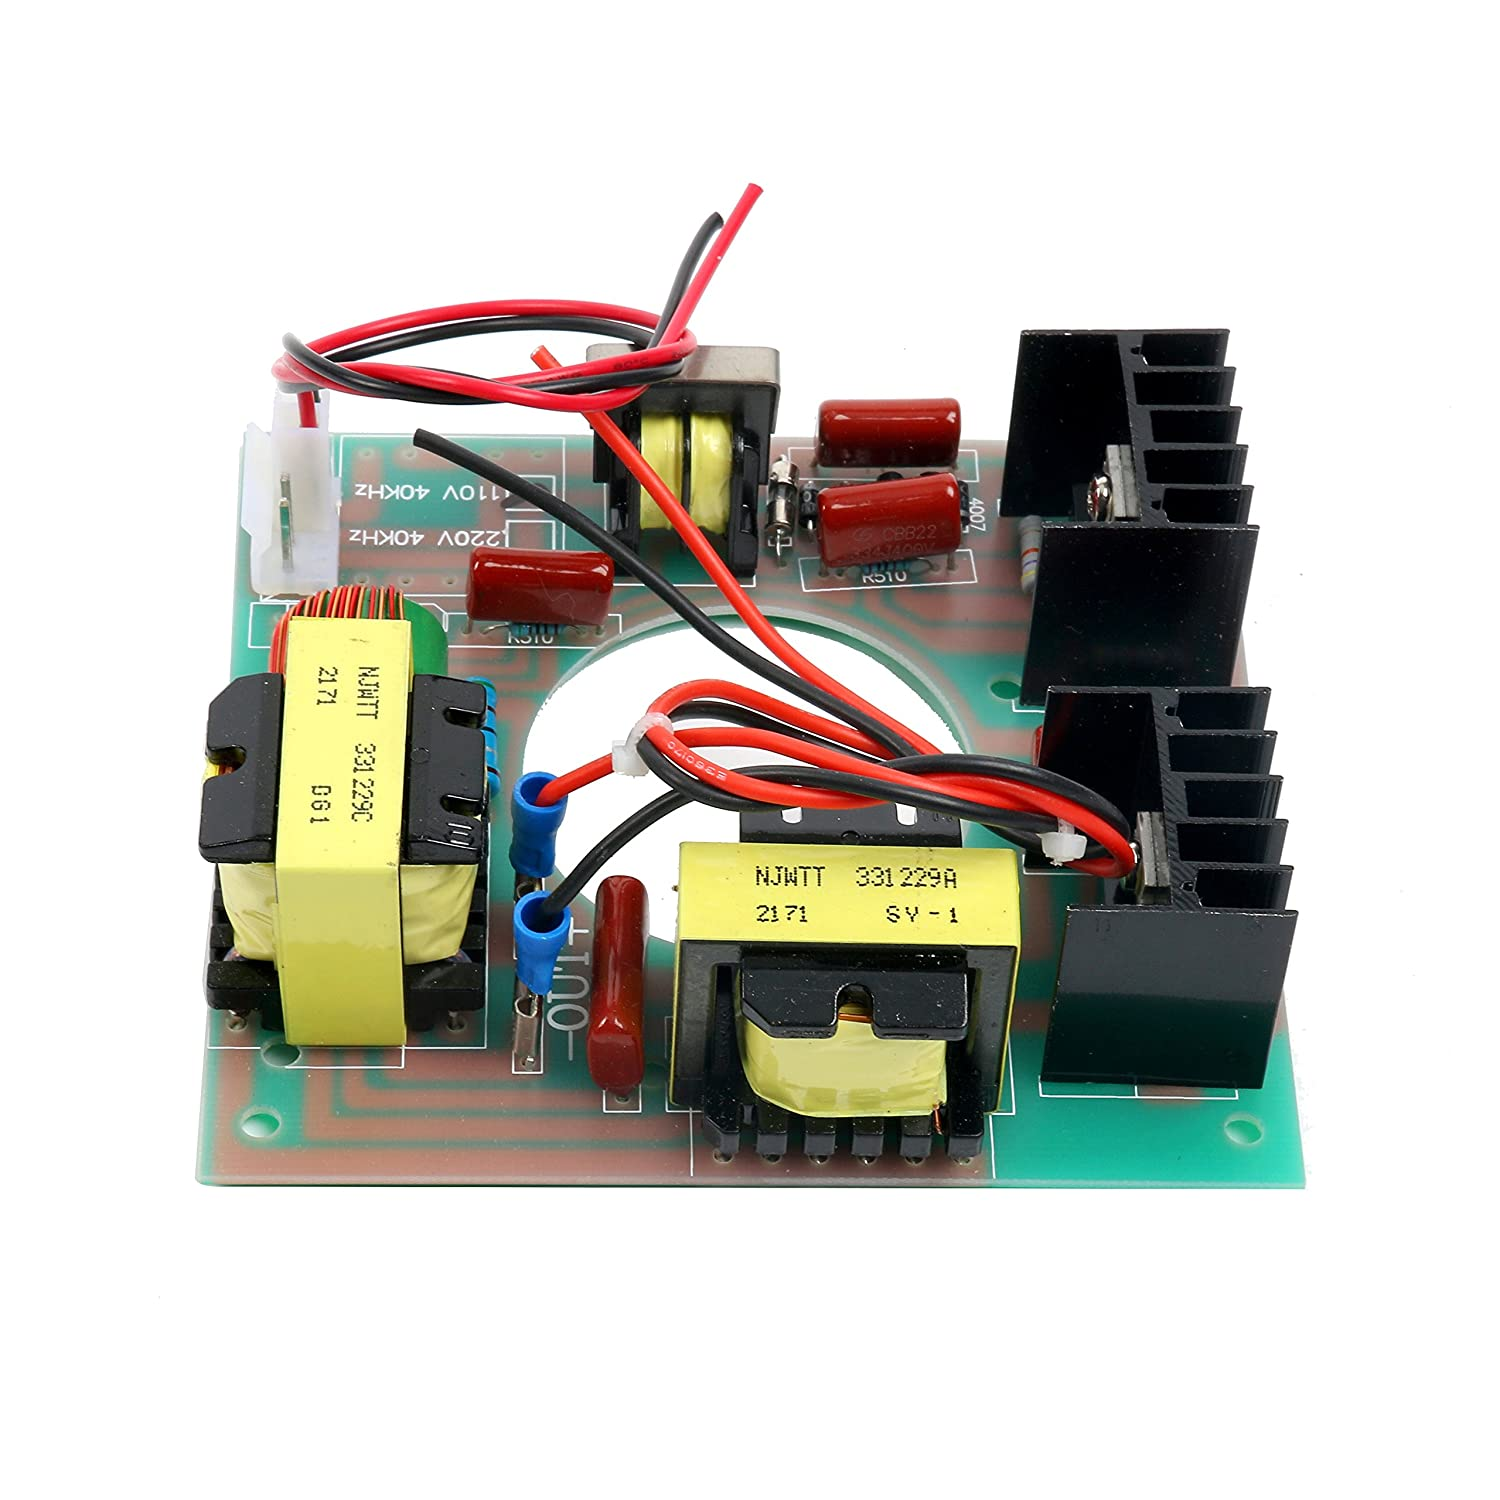 60w 40khz Ultrasonic Cleaning Transducer Cleaner Power Driver Generators Generator Circuit Board 110v Ac Industrial Scientific